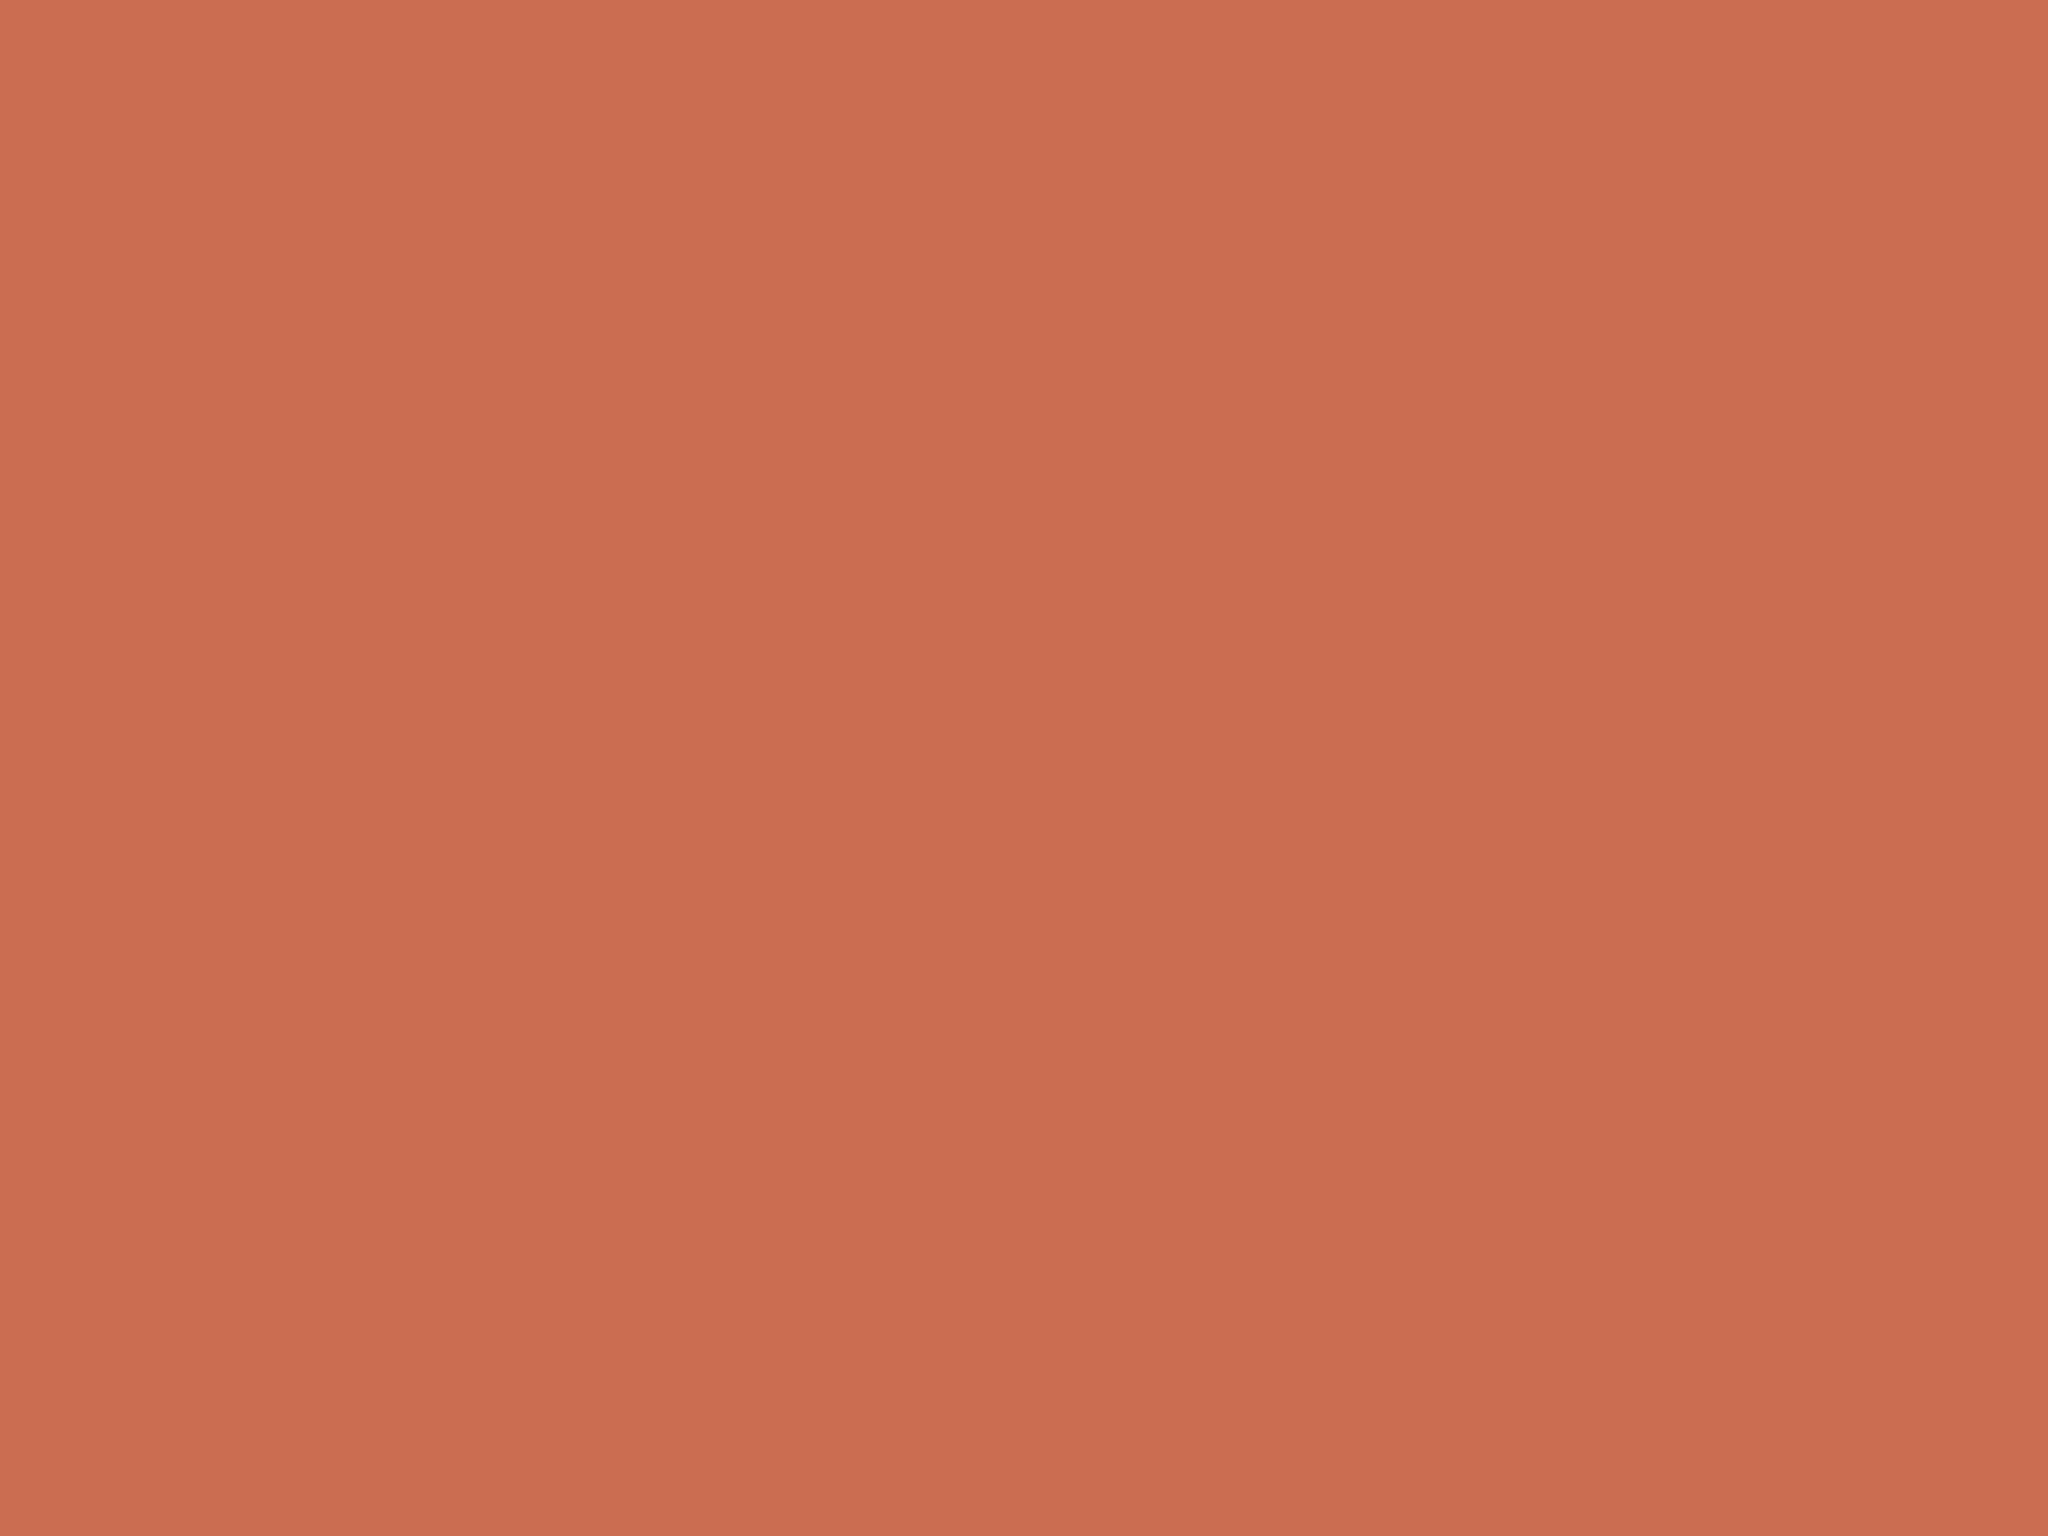 2048x1536 Copper Red Solid Color Background